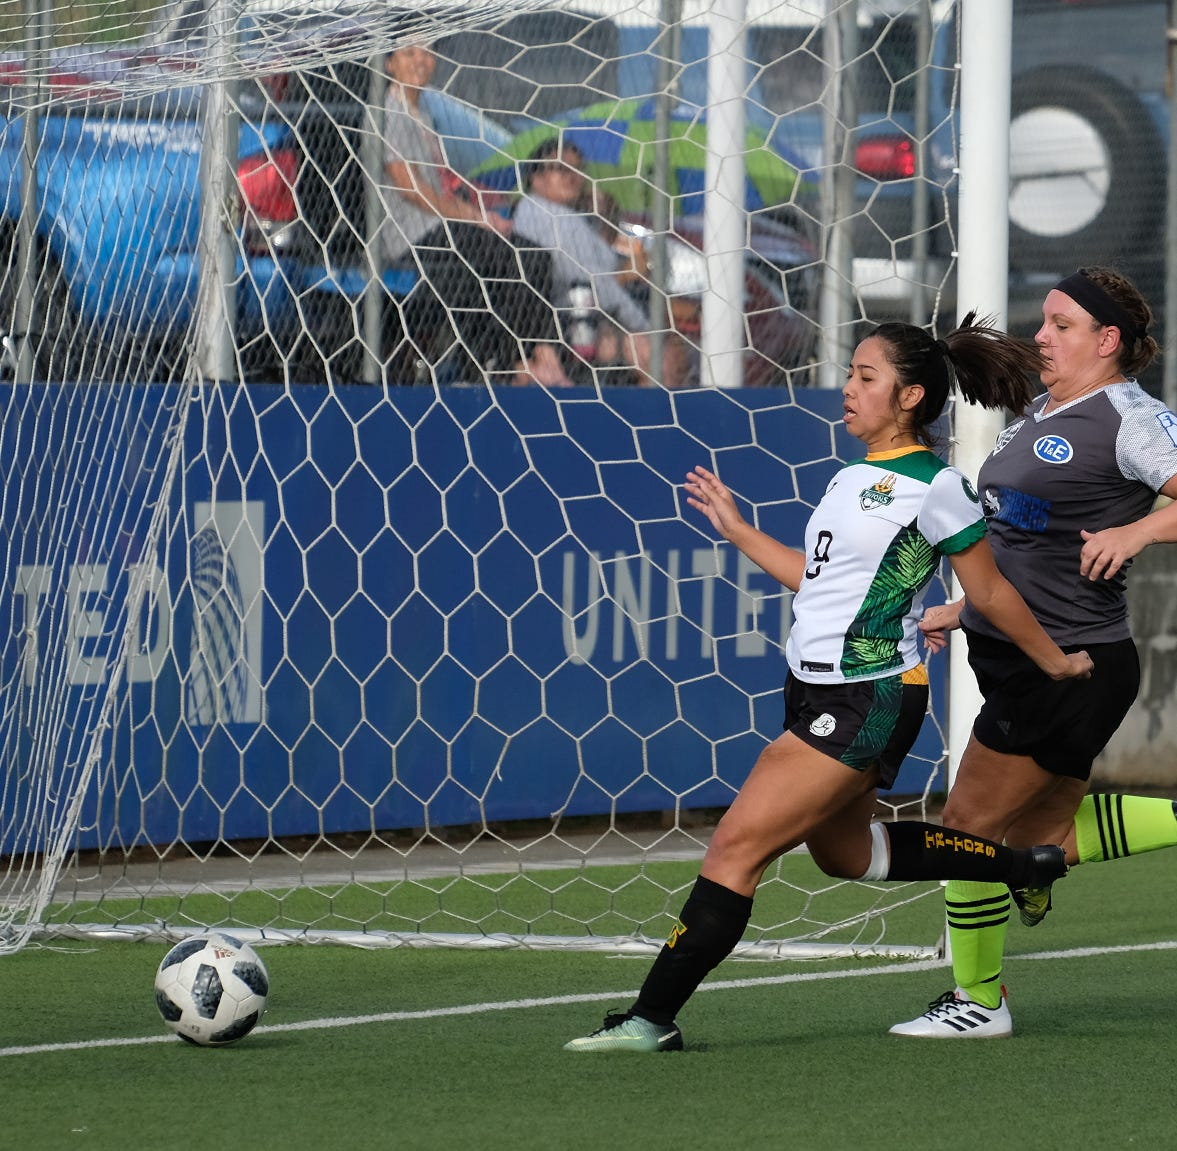 Islanders FC dominate Lady Tritons during soccer match